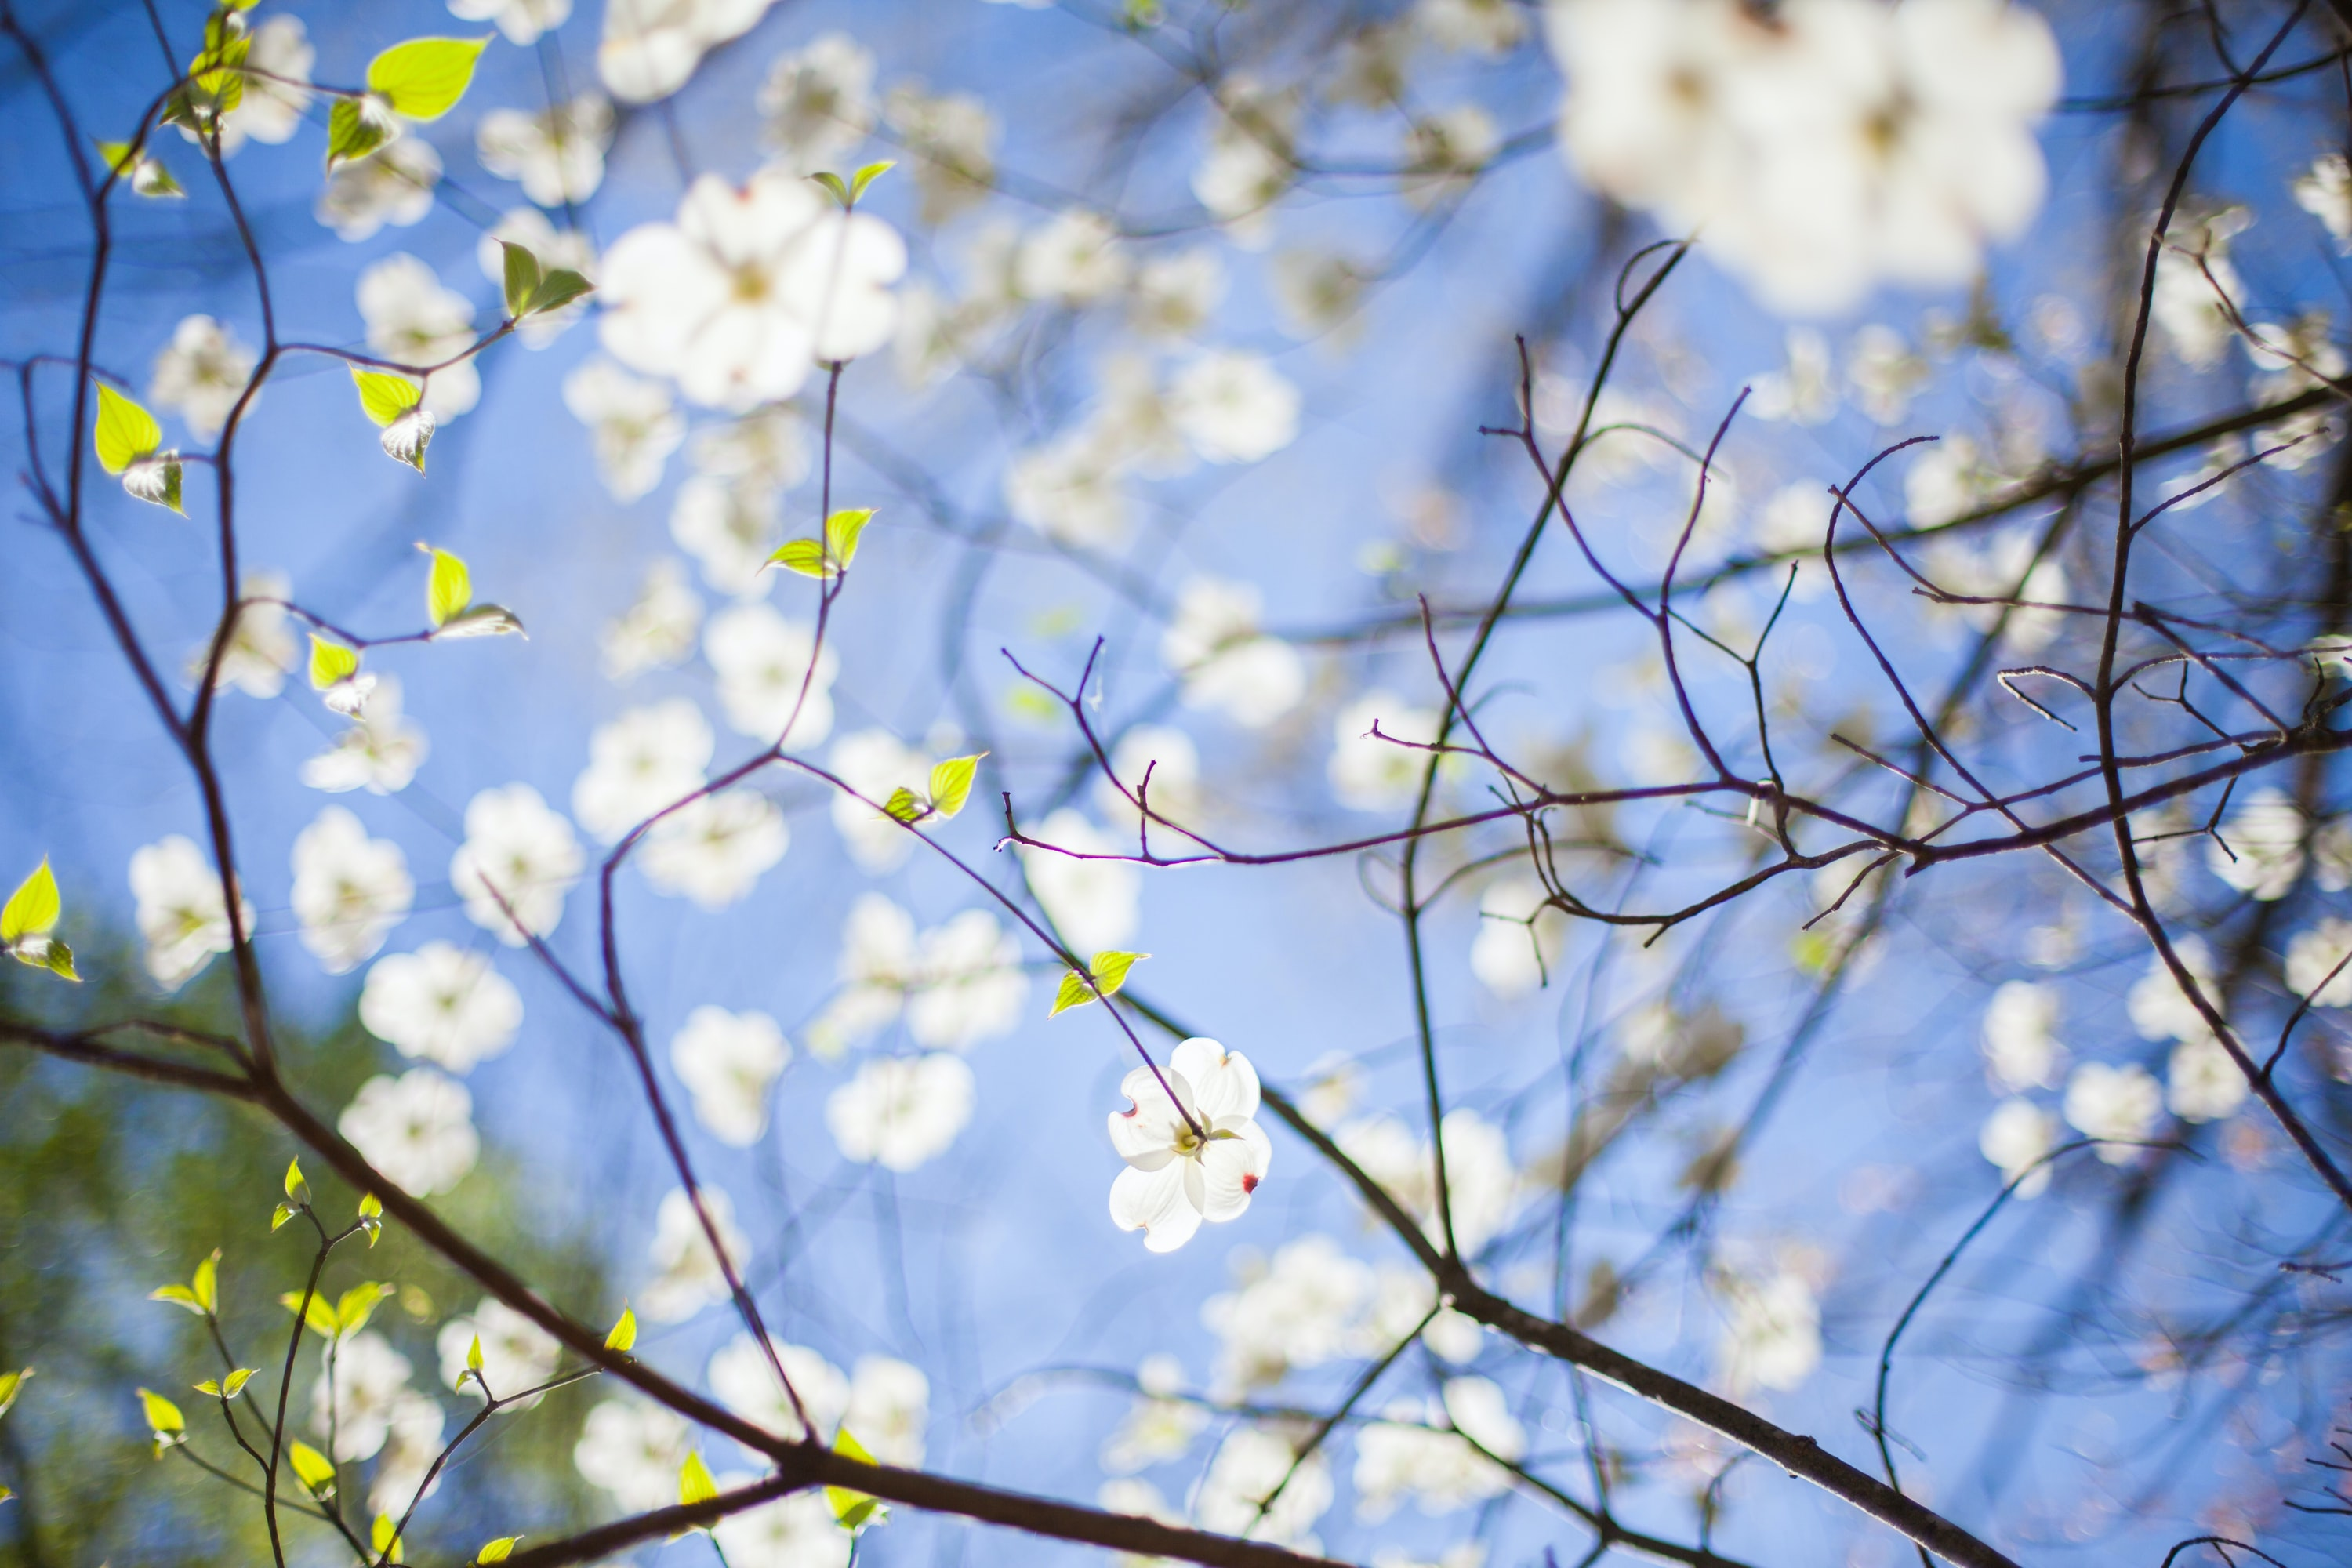 White blossom flowers in branches and blue sky in Spring, Raleigh